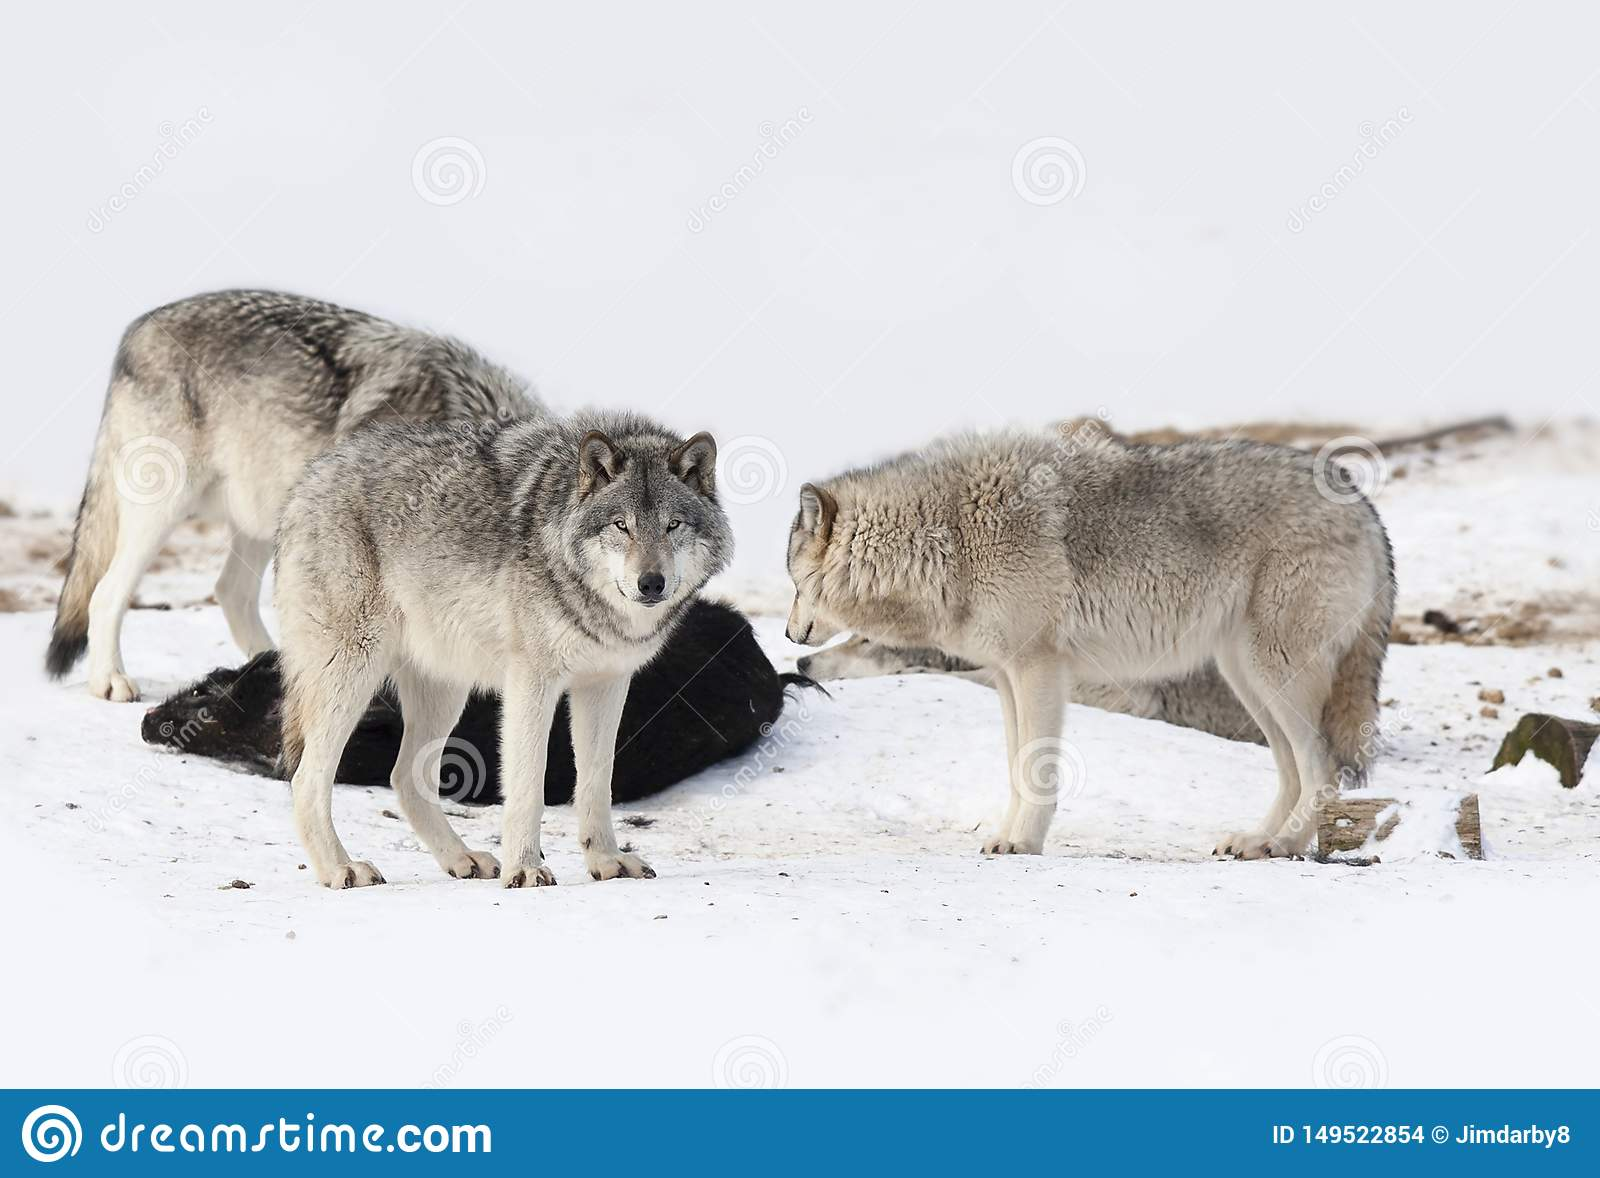 Some Timber wolves or Grey wolves Canis lupus feeding on wild boar carcass in Canada